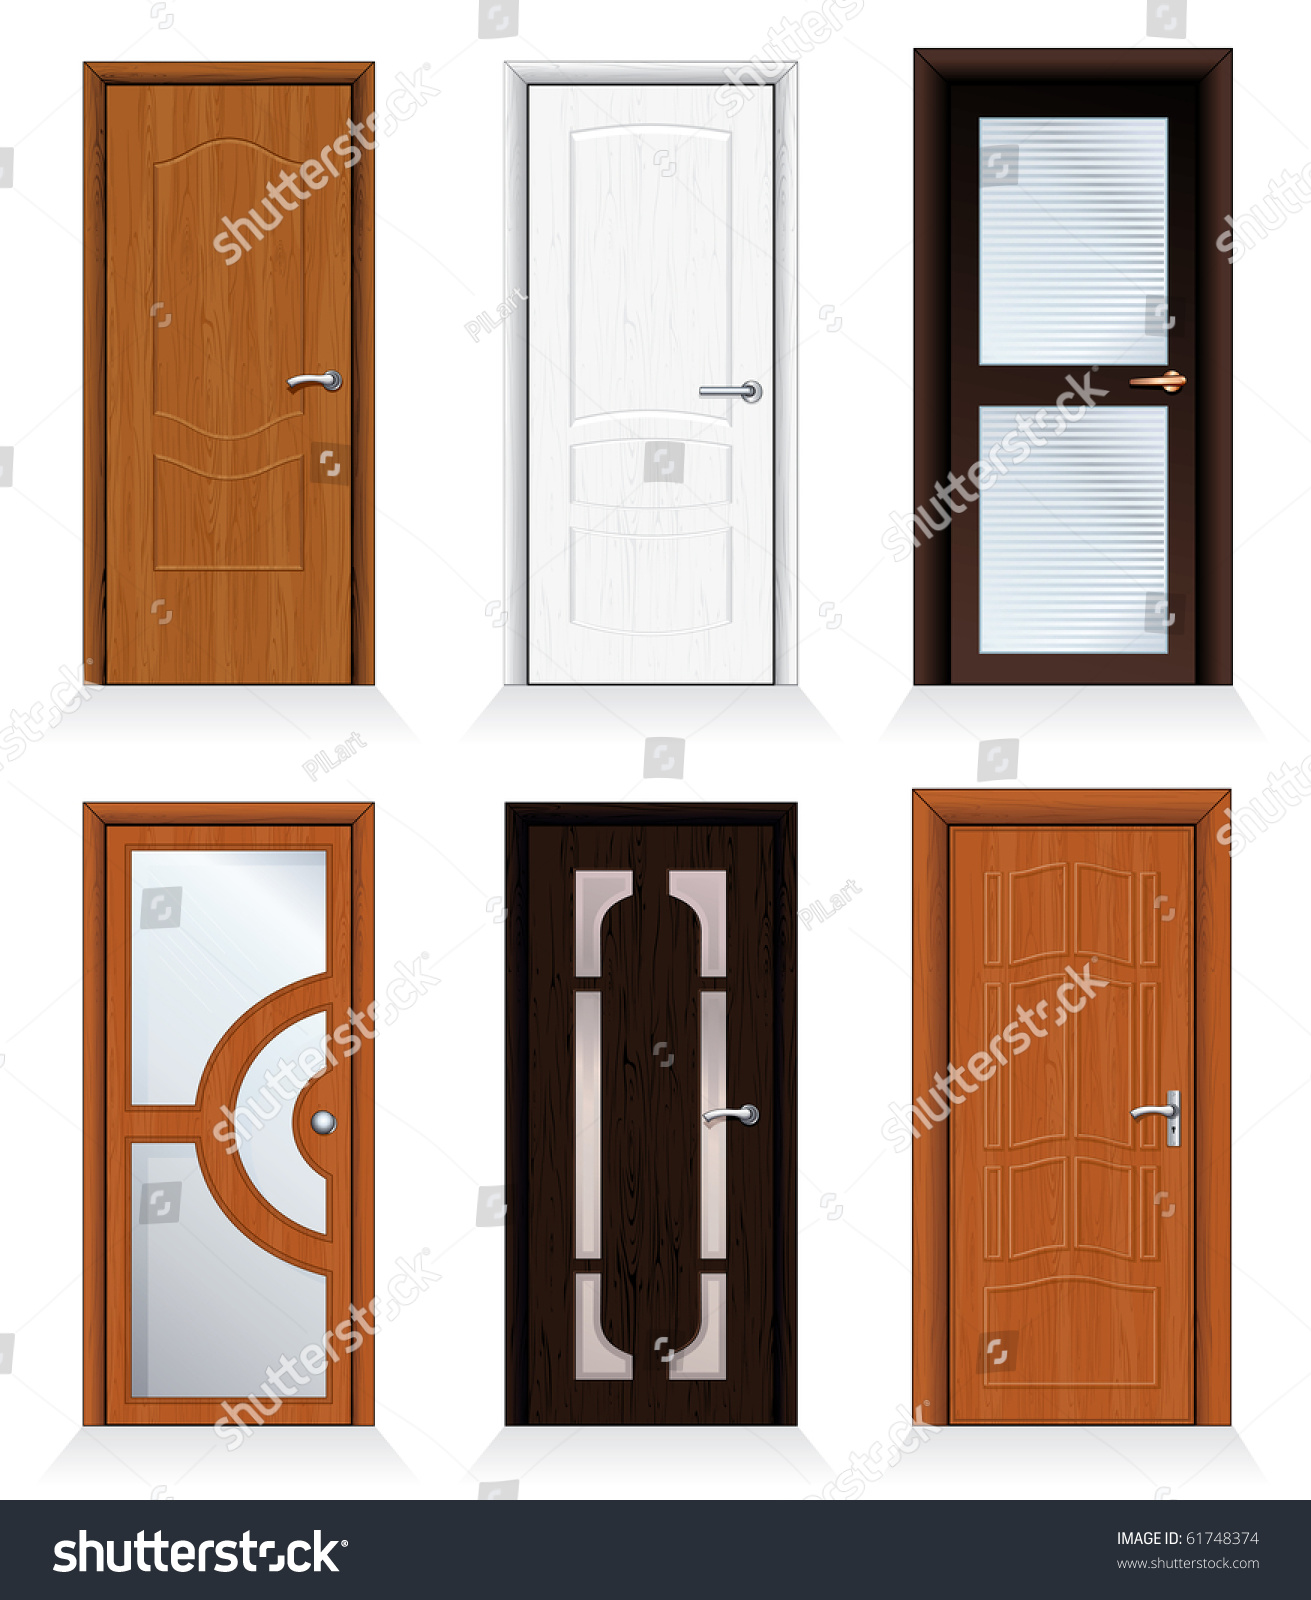 Classic Interior And Front Wooden Doors Detailed Realistic Vector For Your Design To